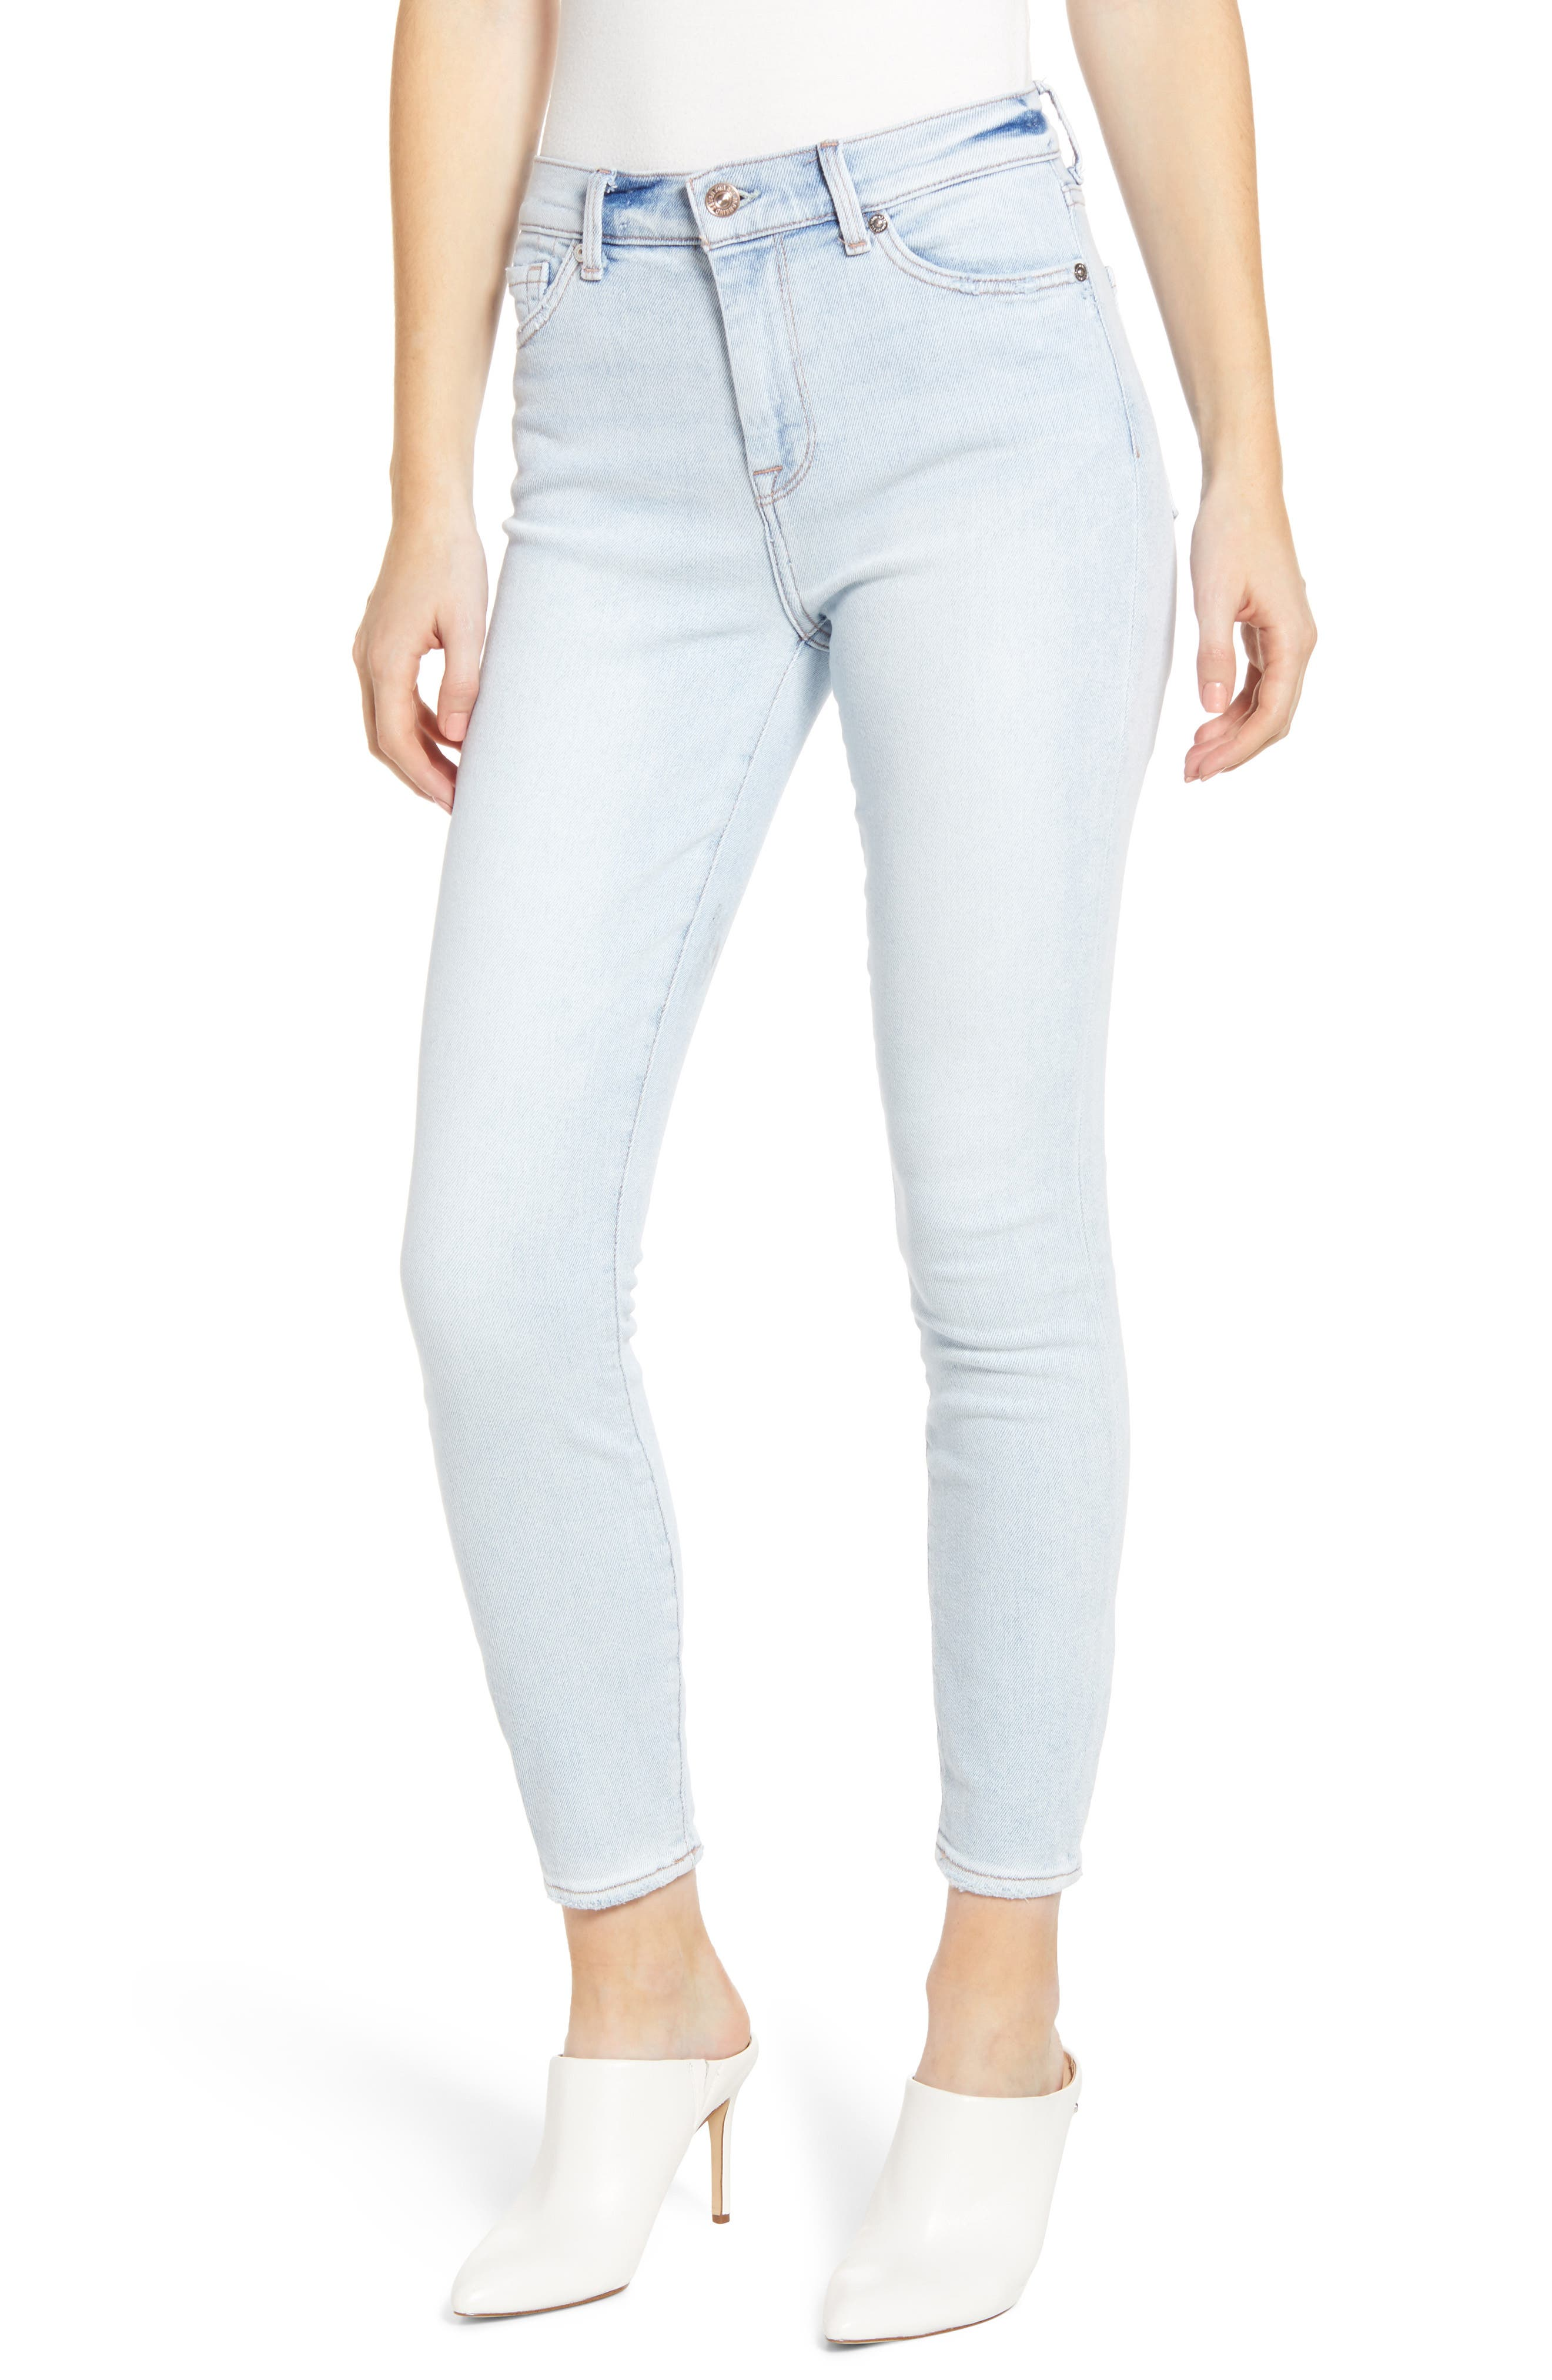 7 FOR ALL MANKIND<SUP>®</SUP>, Luxe Vintage High Waist Ankle Skinny Jeans, Main thumbnail 1, color, LUXE VINTAGE CLOUD